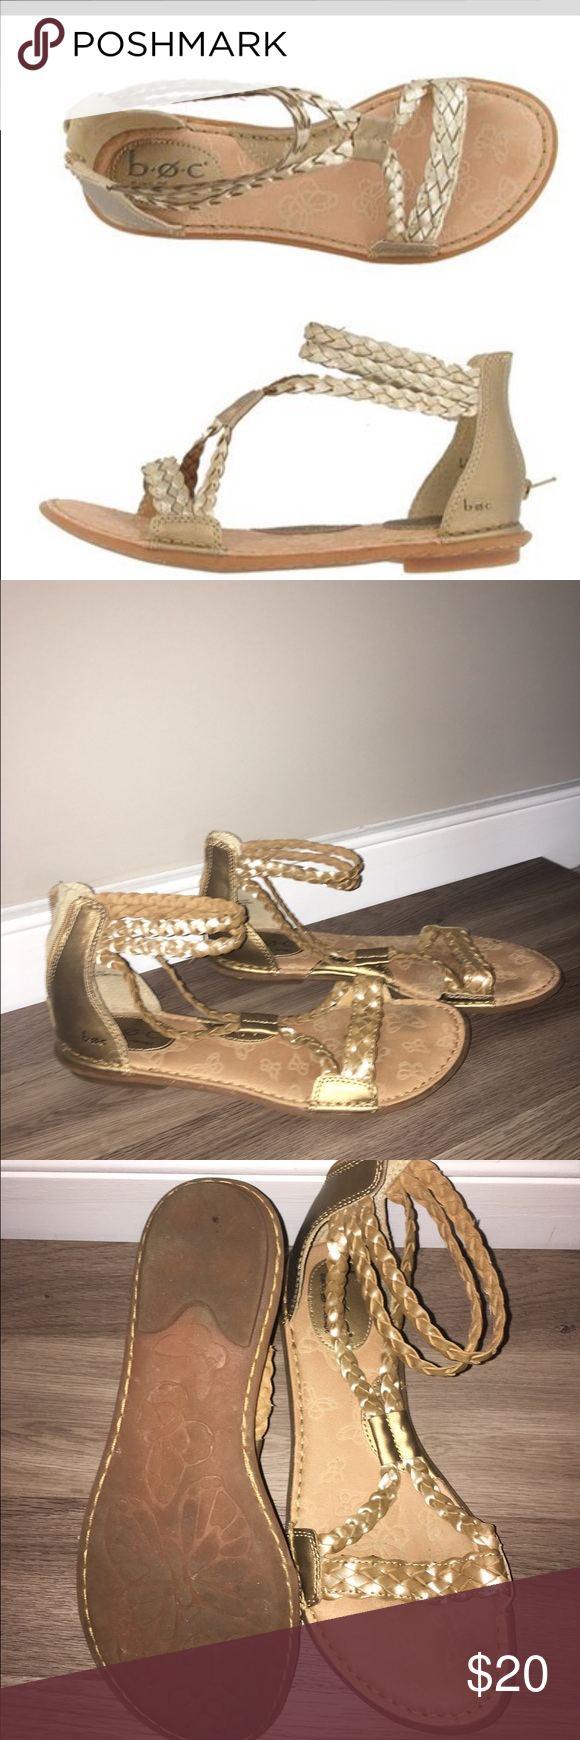 a2d87691f09 b.o.c. gold gladiator sandals B.O.C. Macedonia sandals- gently used and in  great condition! b.o.c. Shoes Sandals